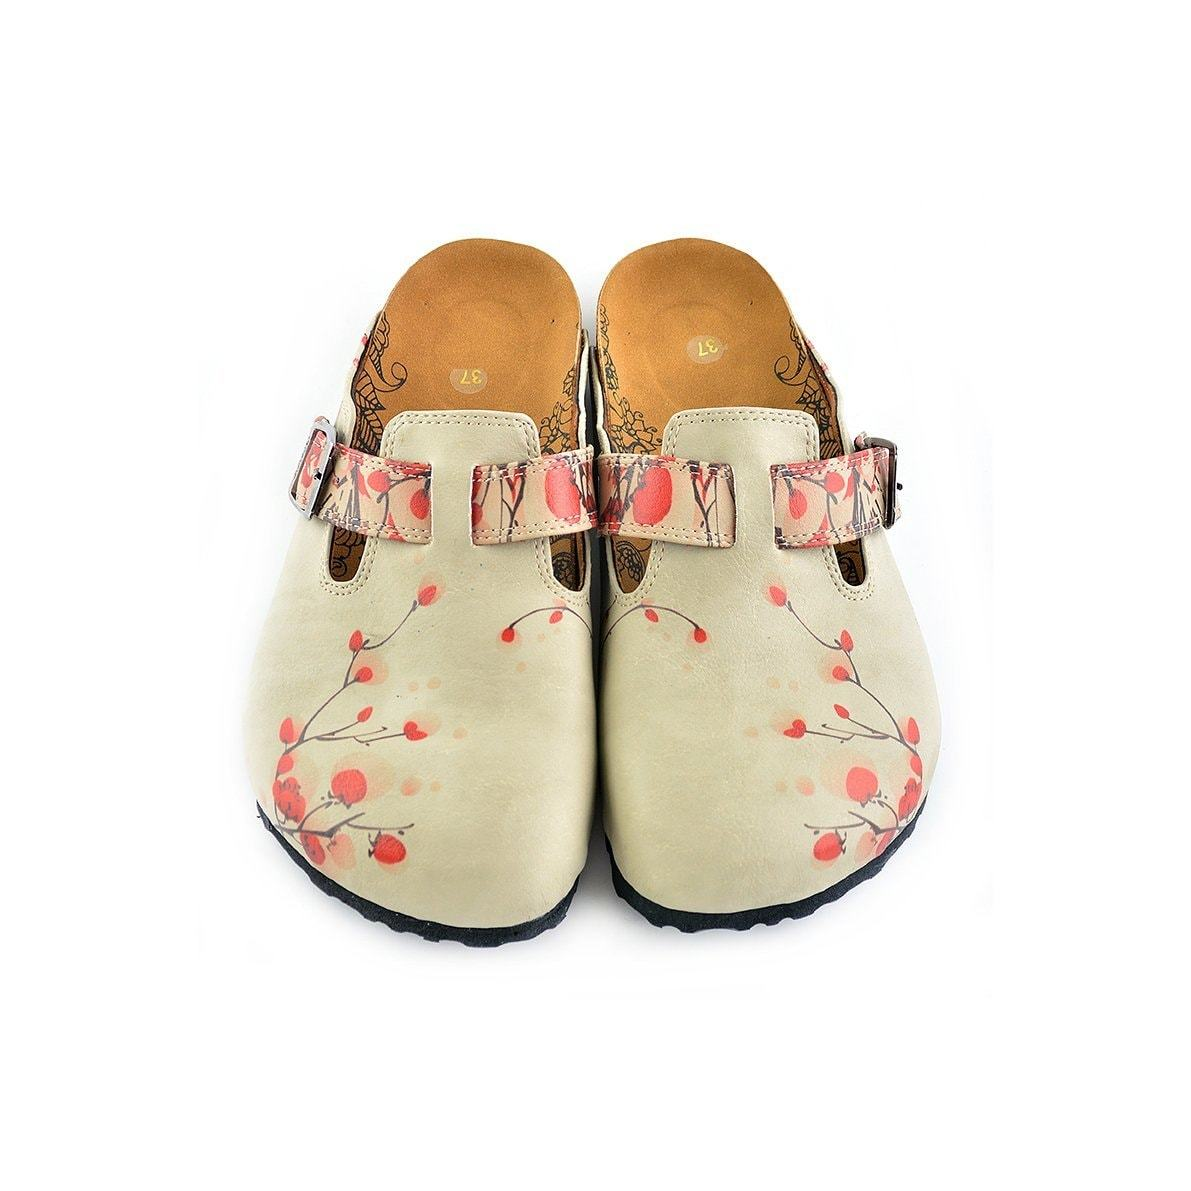 Beige Colored and Red Flowers Patterned Clogs - CAL340